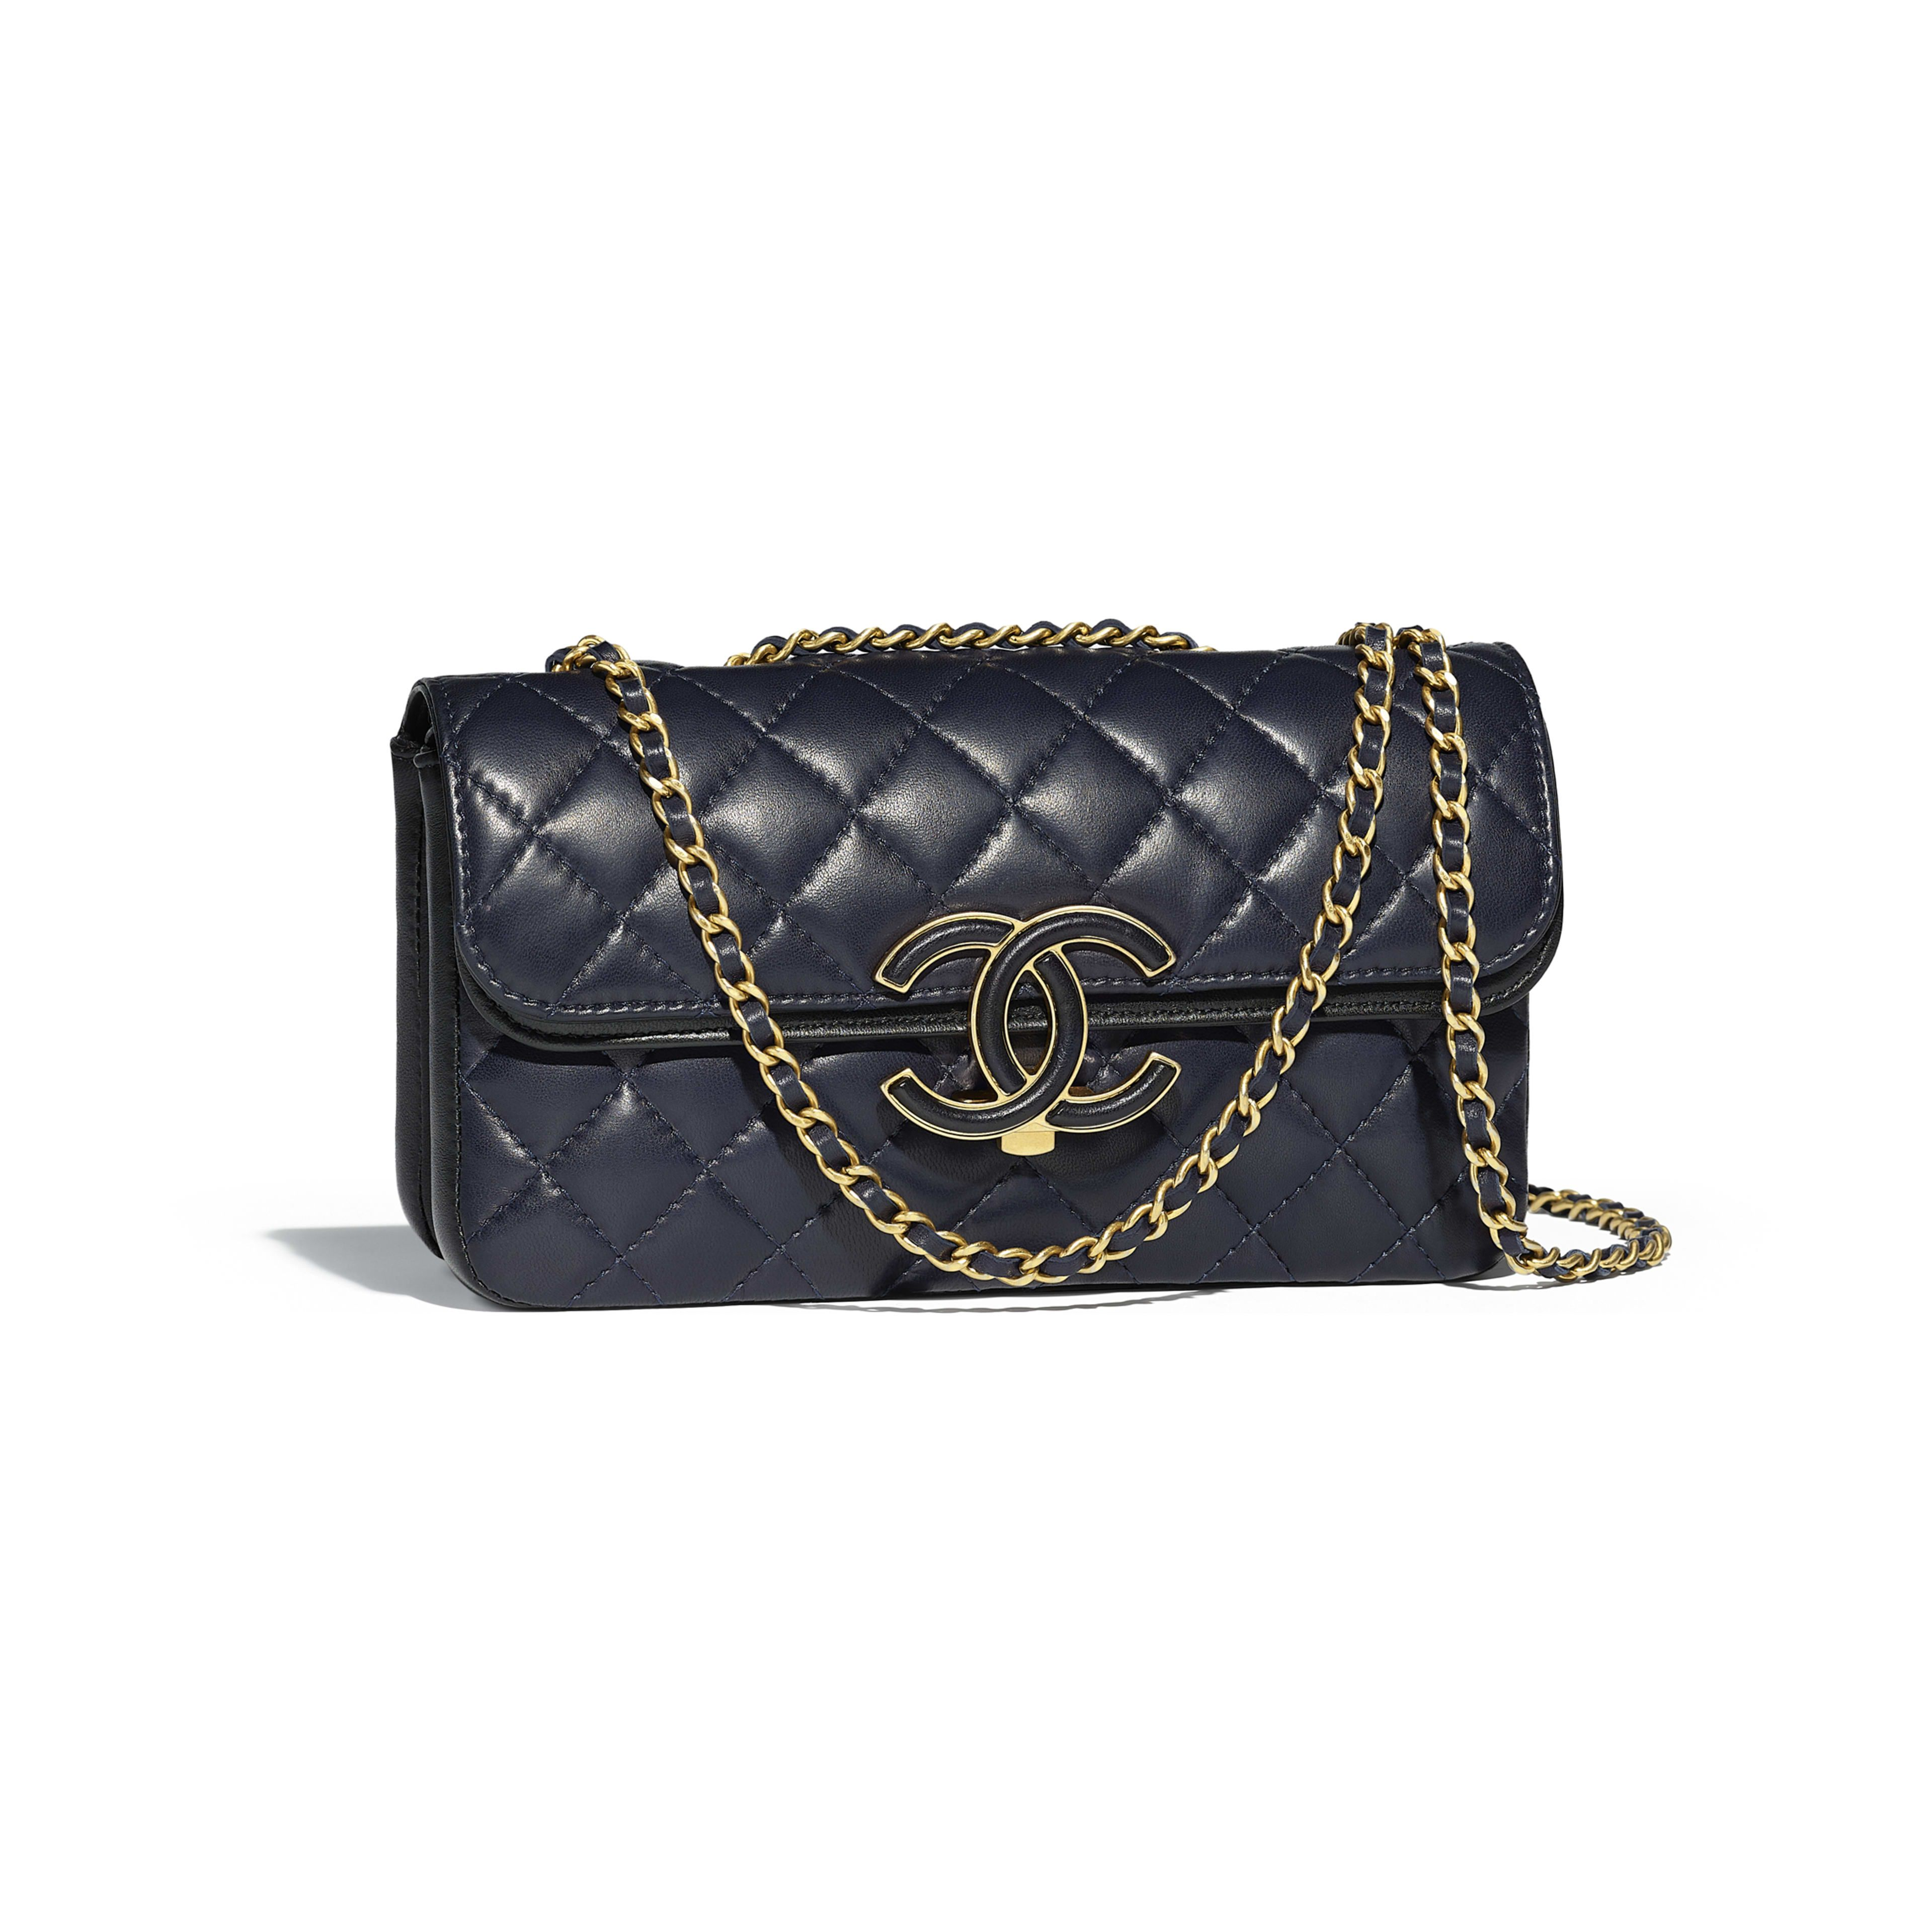 2231d338bc7c46 Flap Bag Lambskin & Gold-Tone Metal Navy Blue & Black - view 1 - see full  sized version